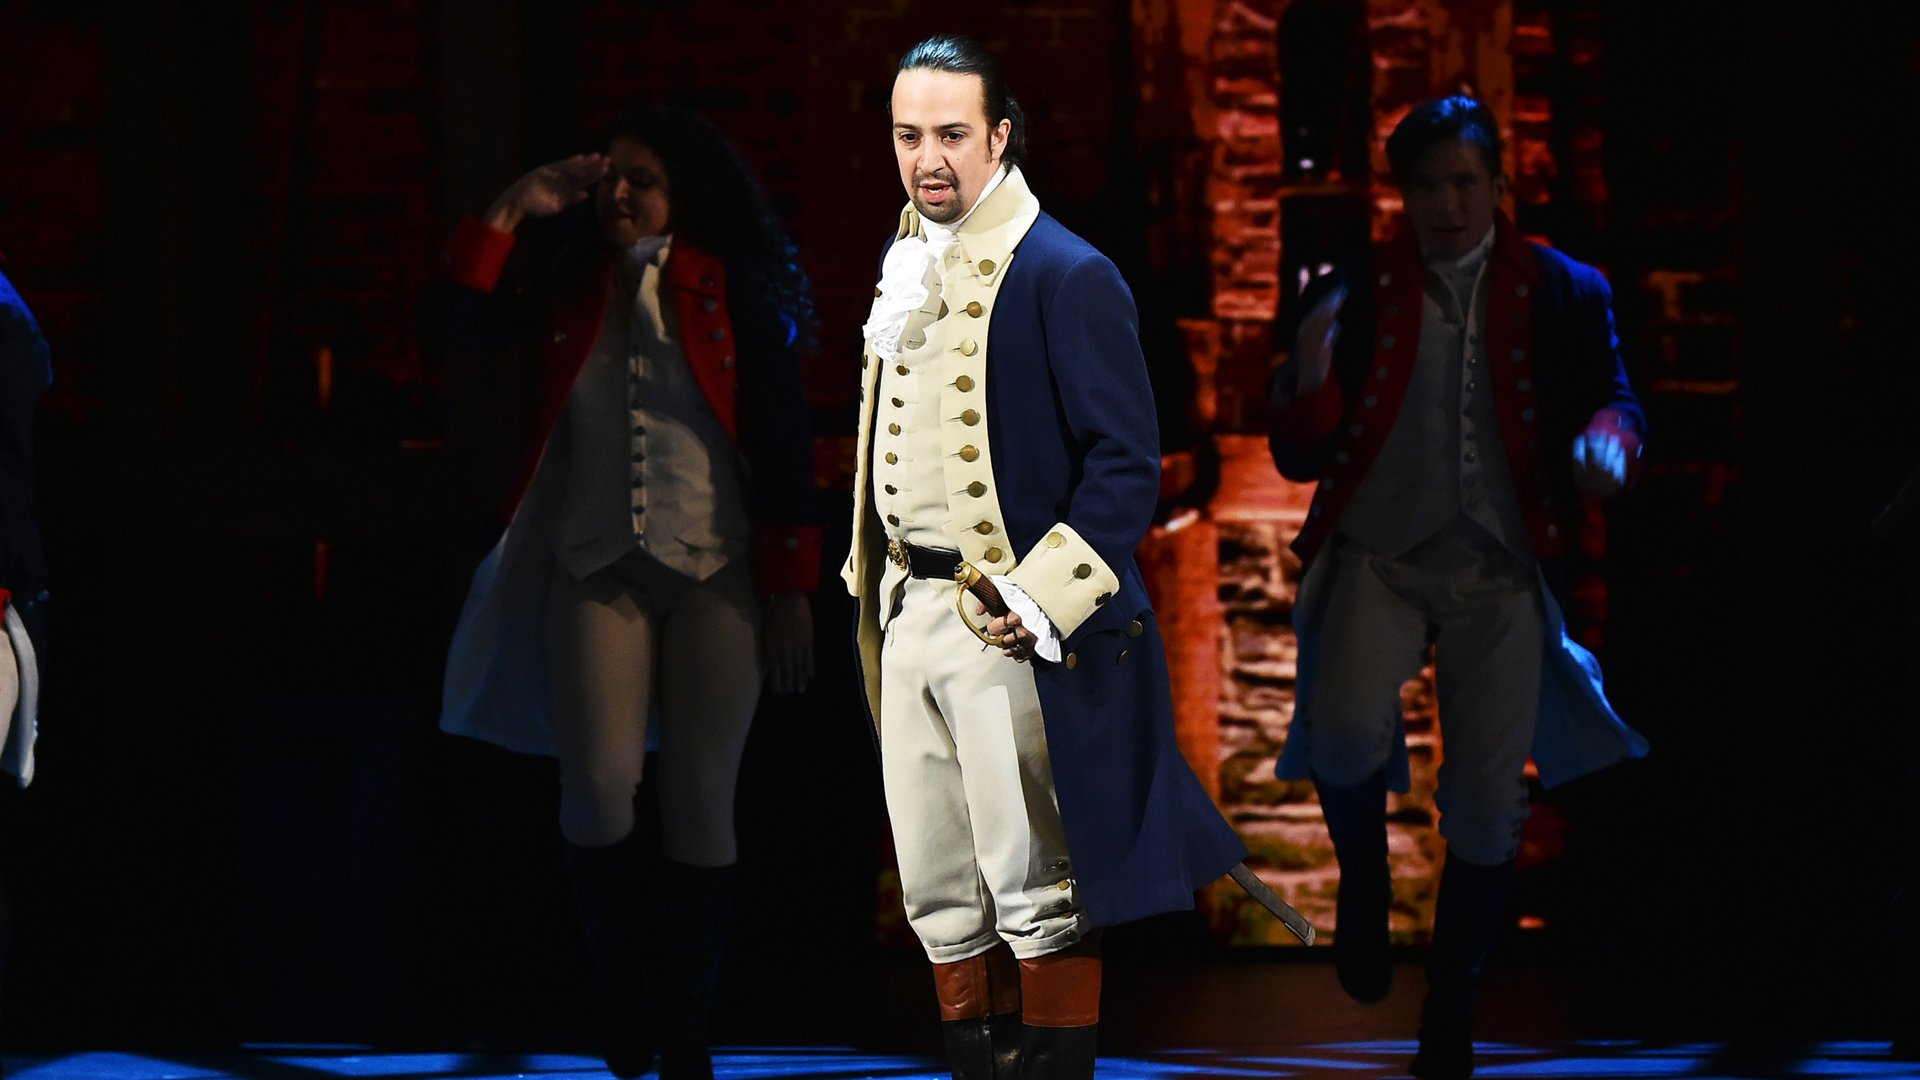 Lin-Manuel Miranda of 'Hamilton' performs onstage during the 70th Annual Tony Awards at The Beacon Theatre in New York City on June 12, 2016. (Credit: Theo Wargo/Getty Images for Tony Awards Productions)